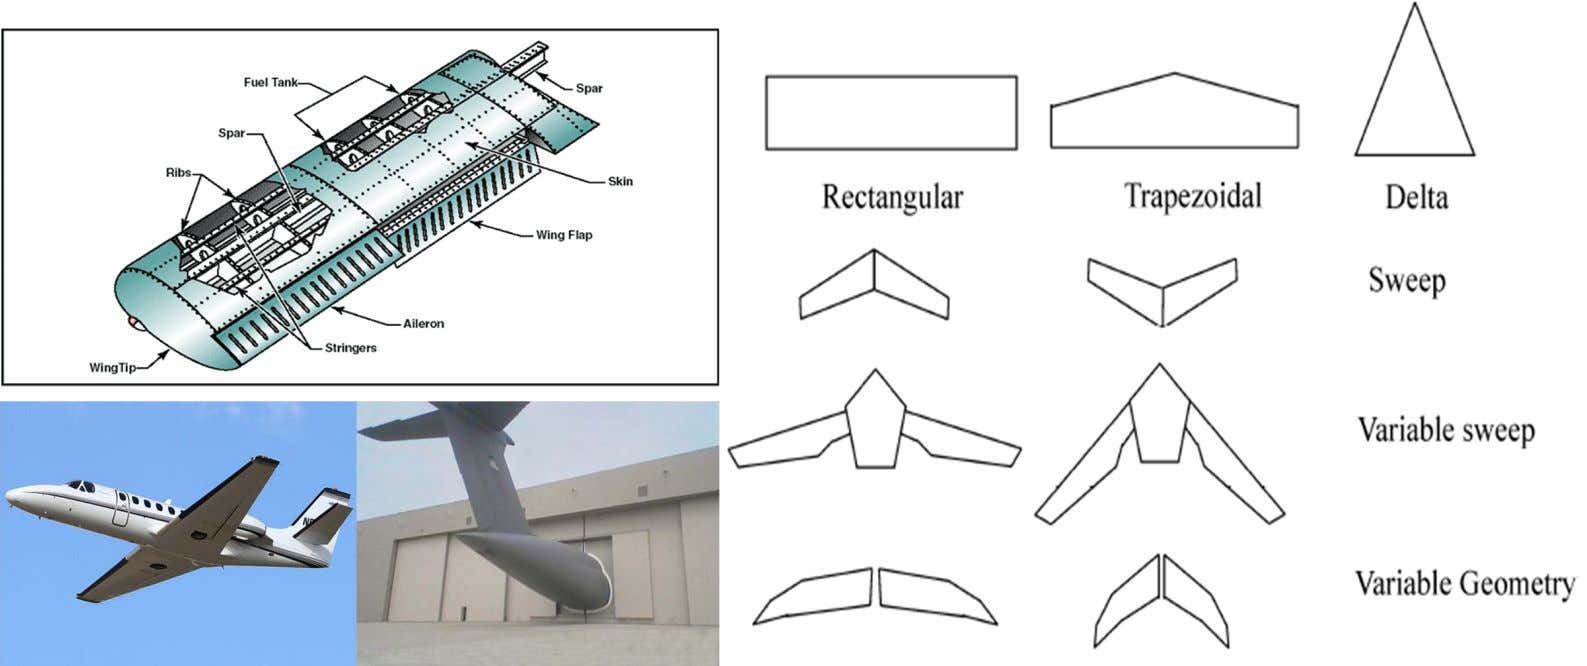 (for fuel/payload) – Stealth characteristics (for military subsonic) – Airport limitations (wing ‐ span)